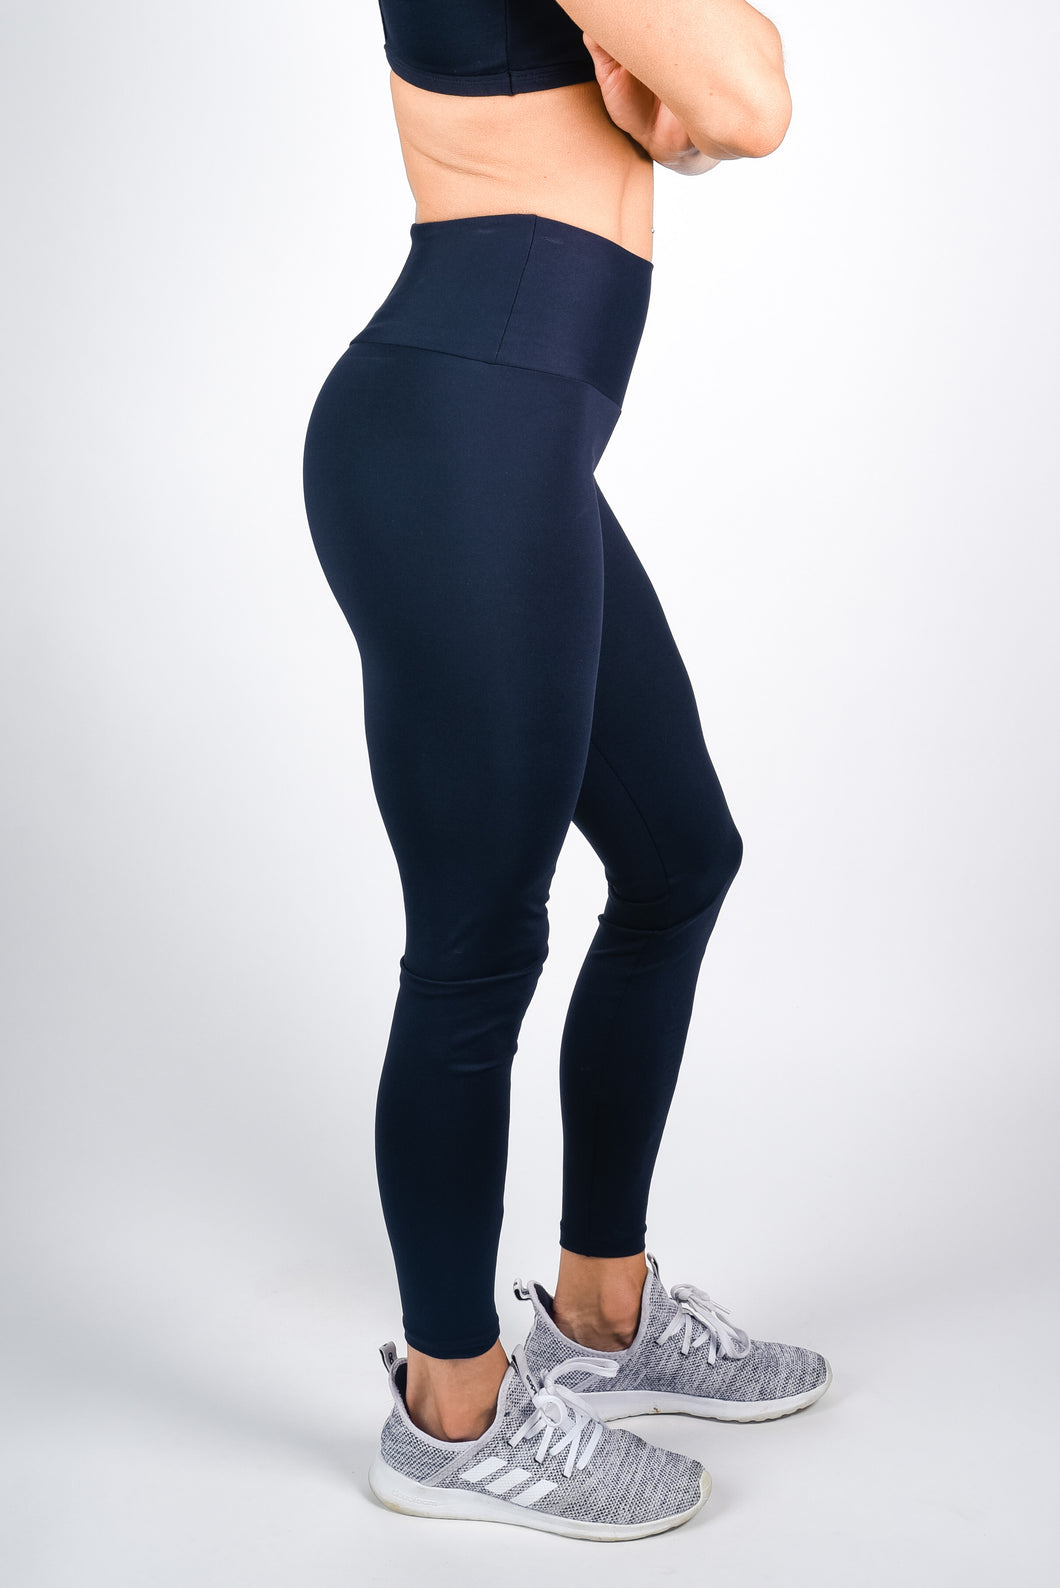 BASIC BLACK High-Rise Leggings